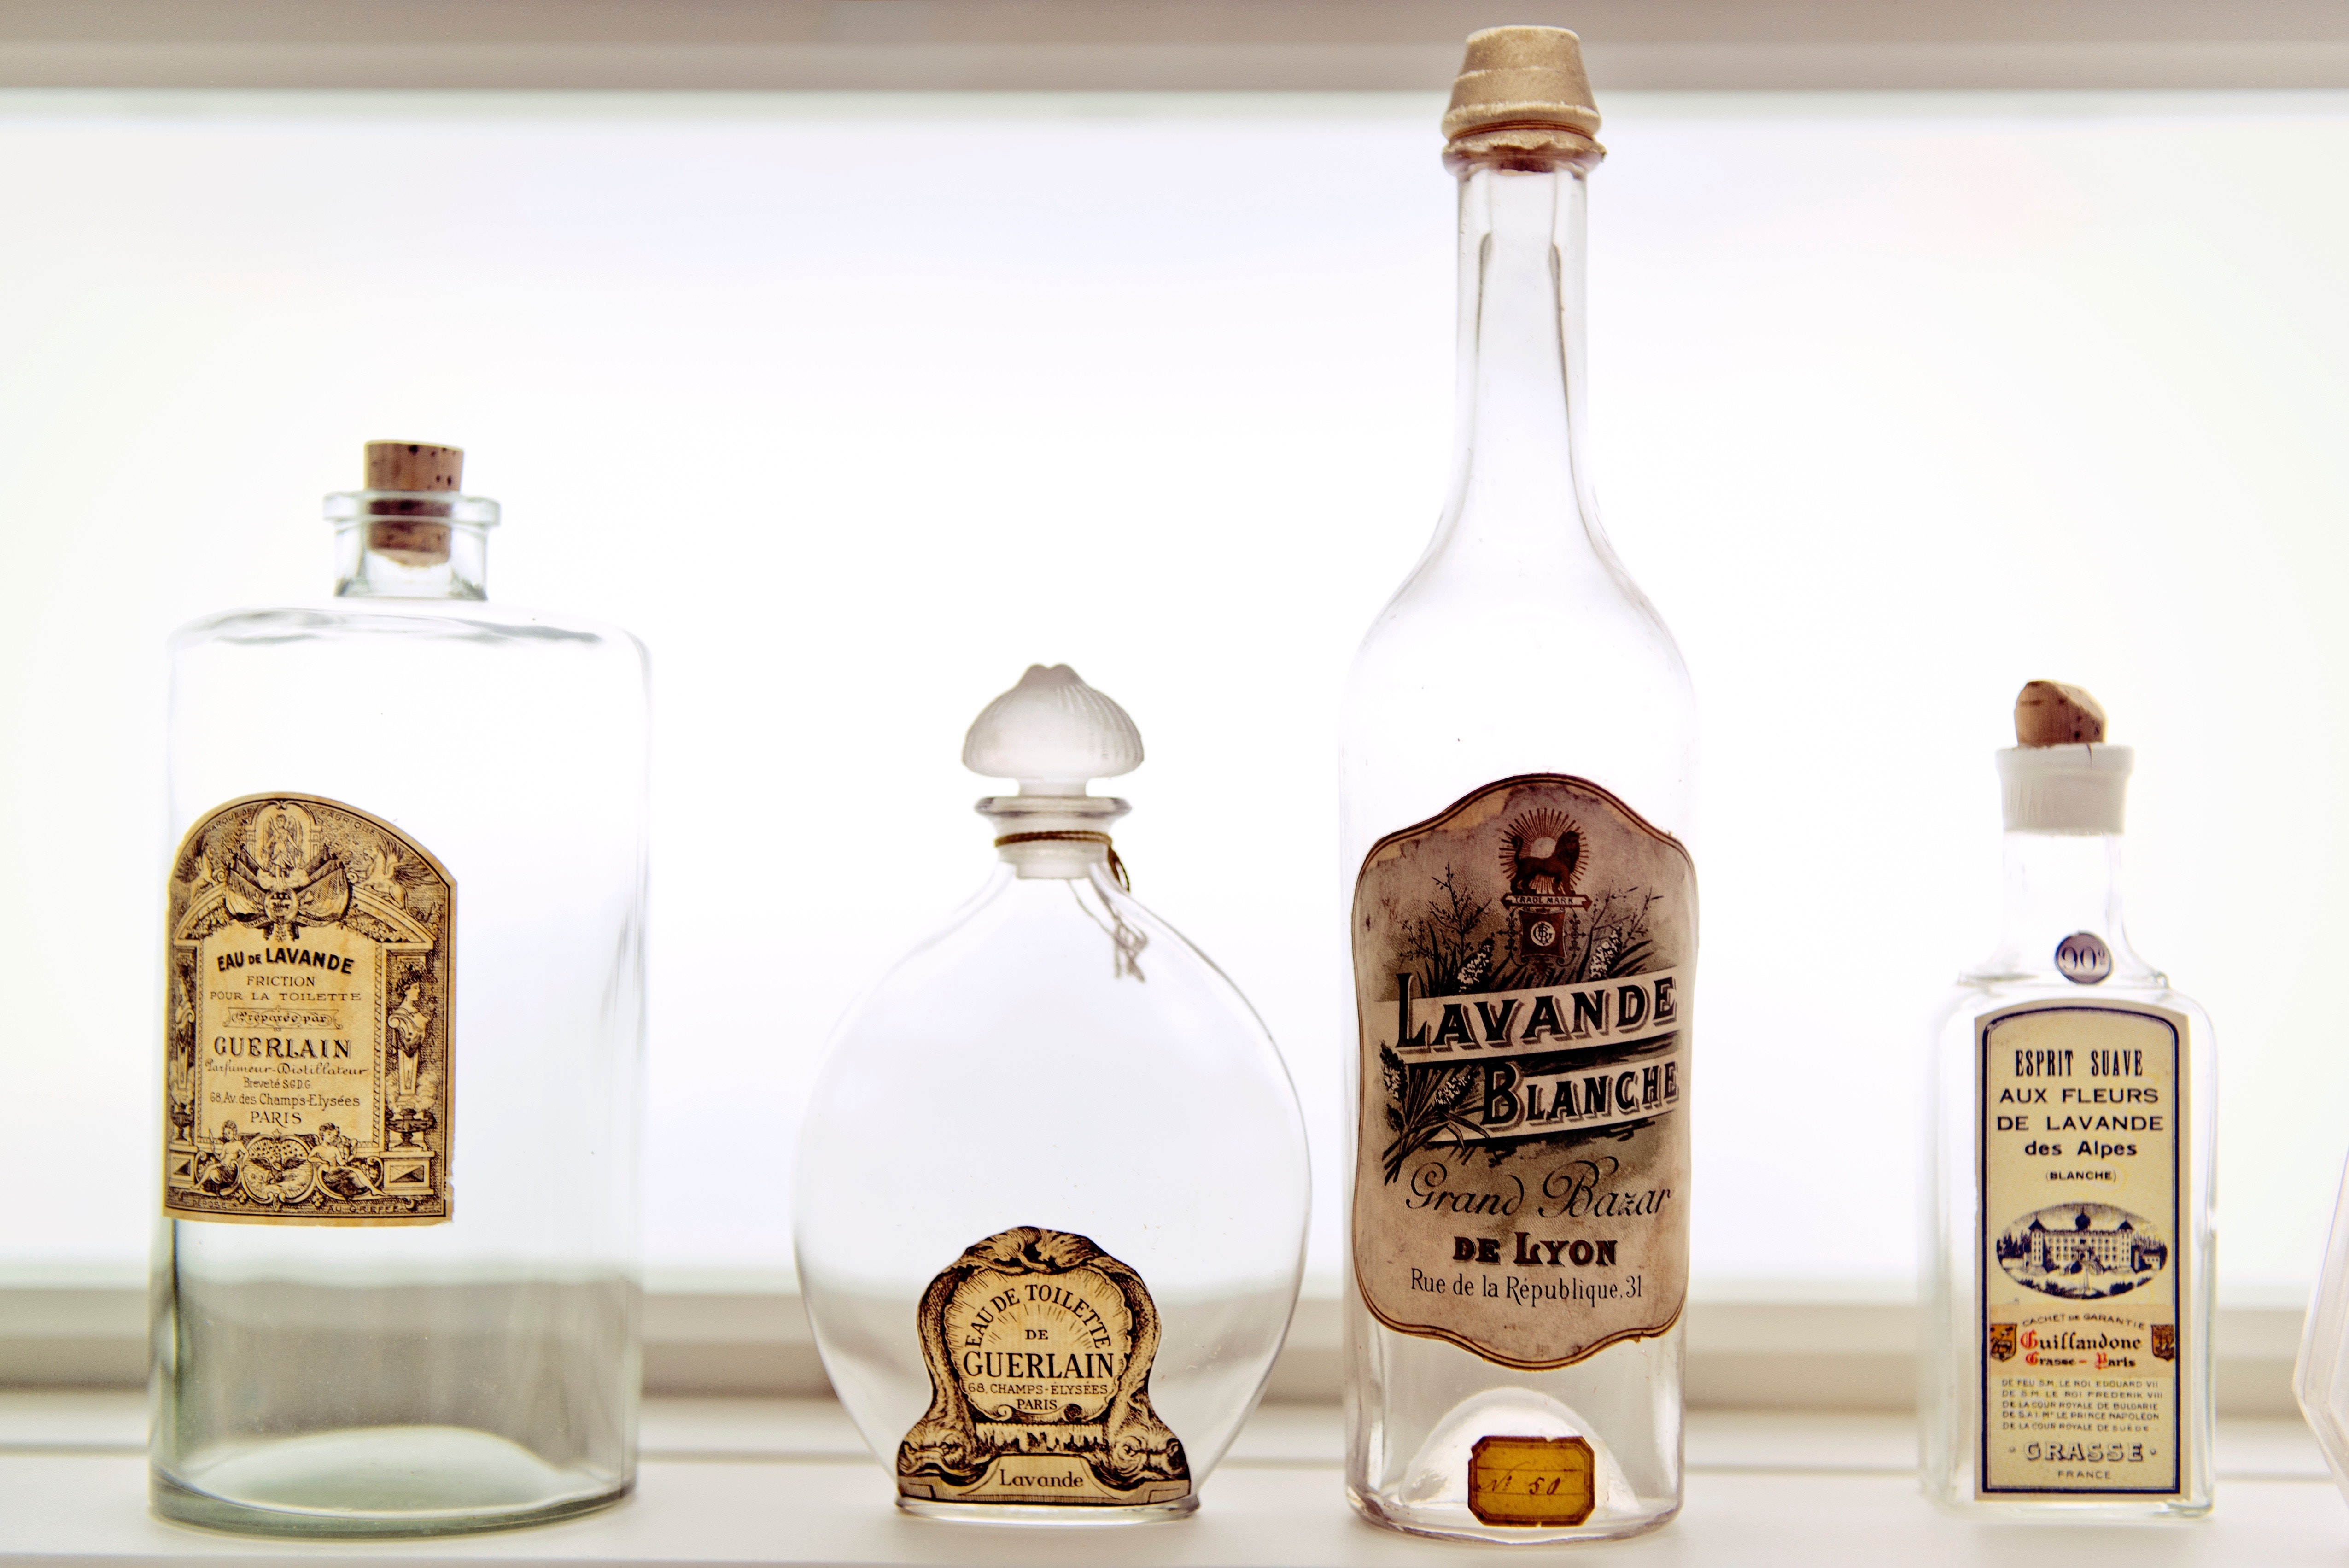 Antique bottles at the Musée International de la Parfumerie in Grasse represent the city's long tradition of perfume making.